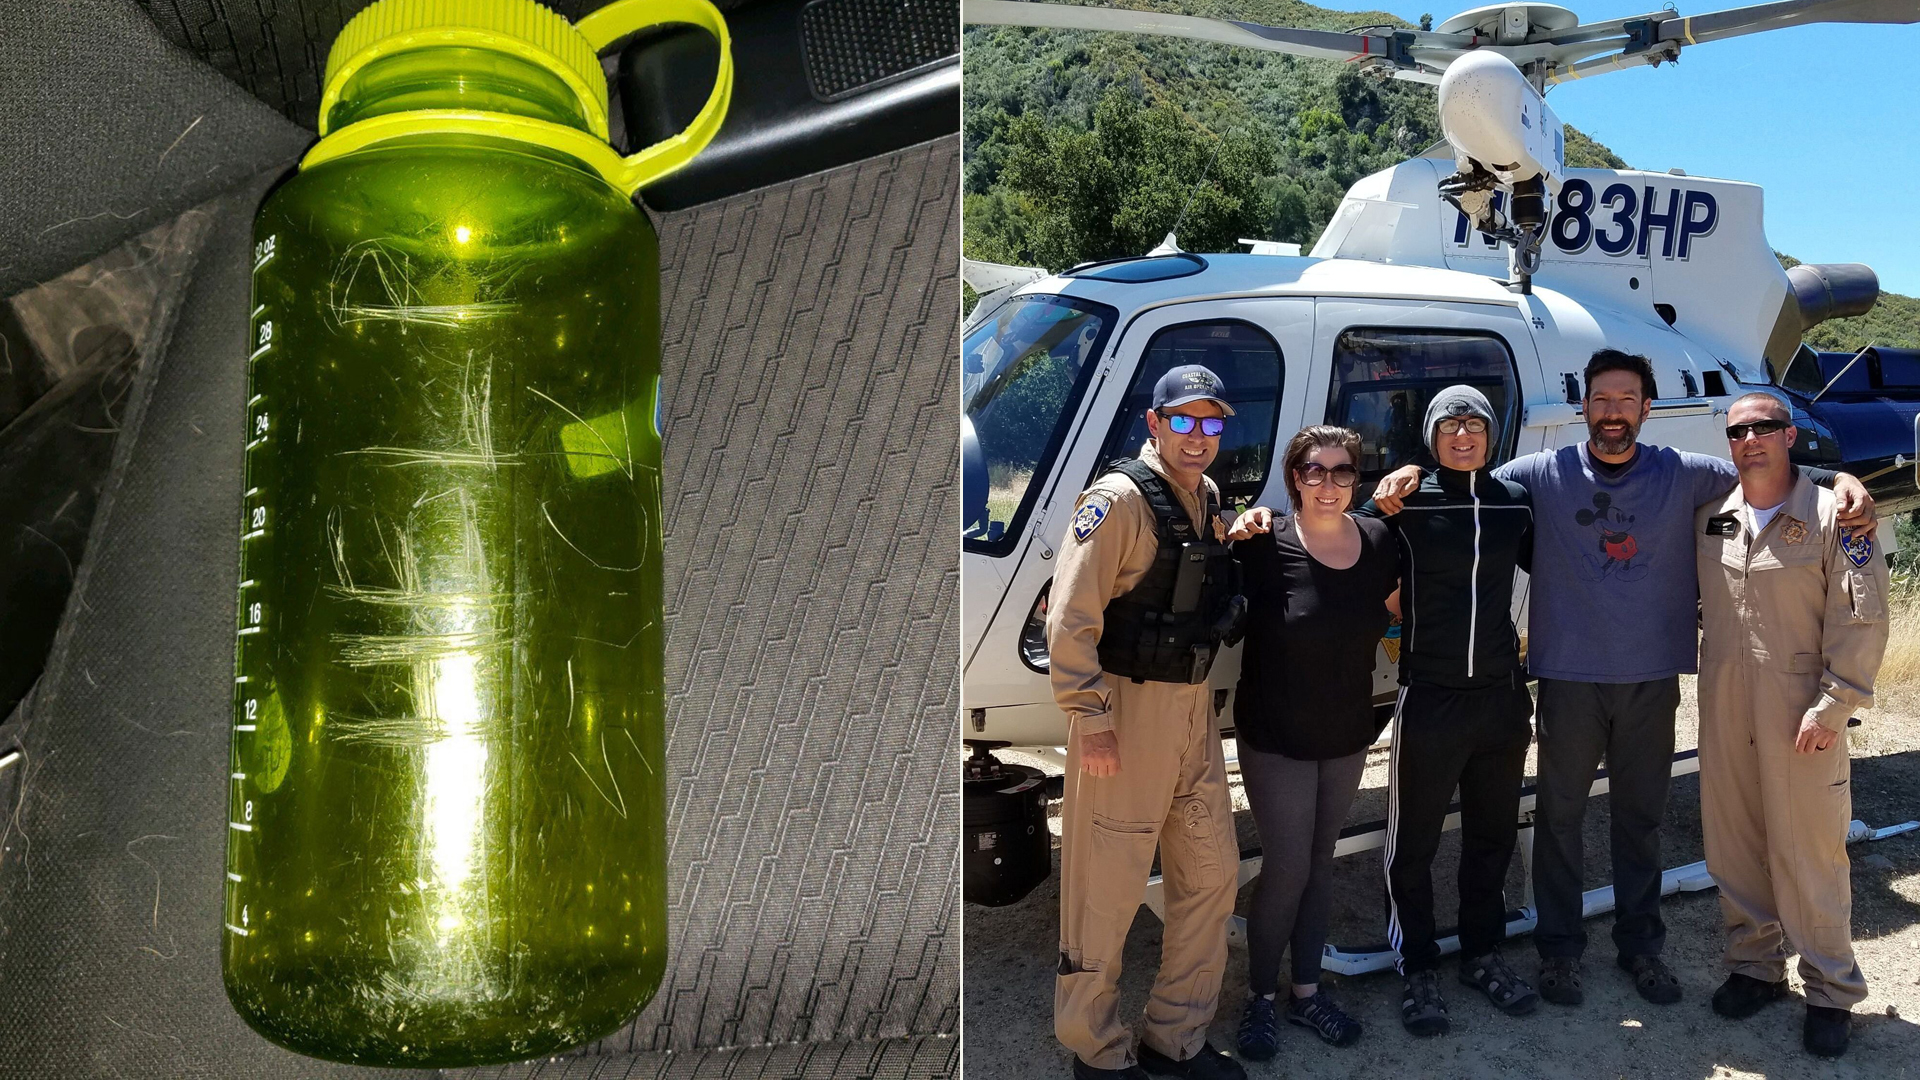 """A family stranded while backpacking in the Arroyo Seco River carved """"HELP"""" on a green bottle in June 2019. On the right, Curtis Whitson, his 13-year-old son and girlfriend, Krystal Ramirez, pose with rescue crews. (Credit: Curtis Whitson via CNN)"""